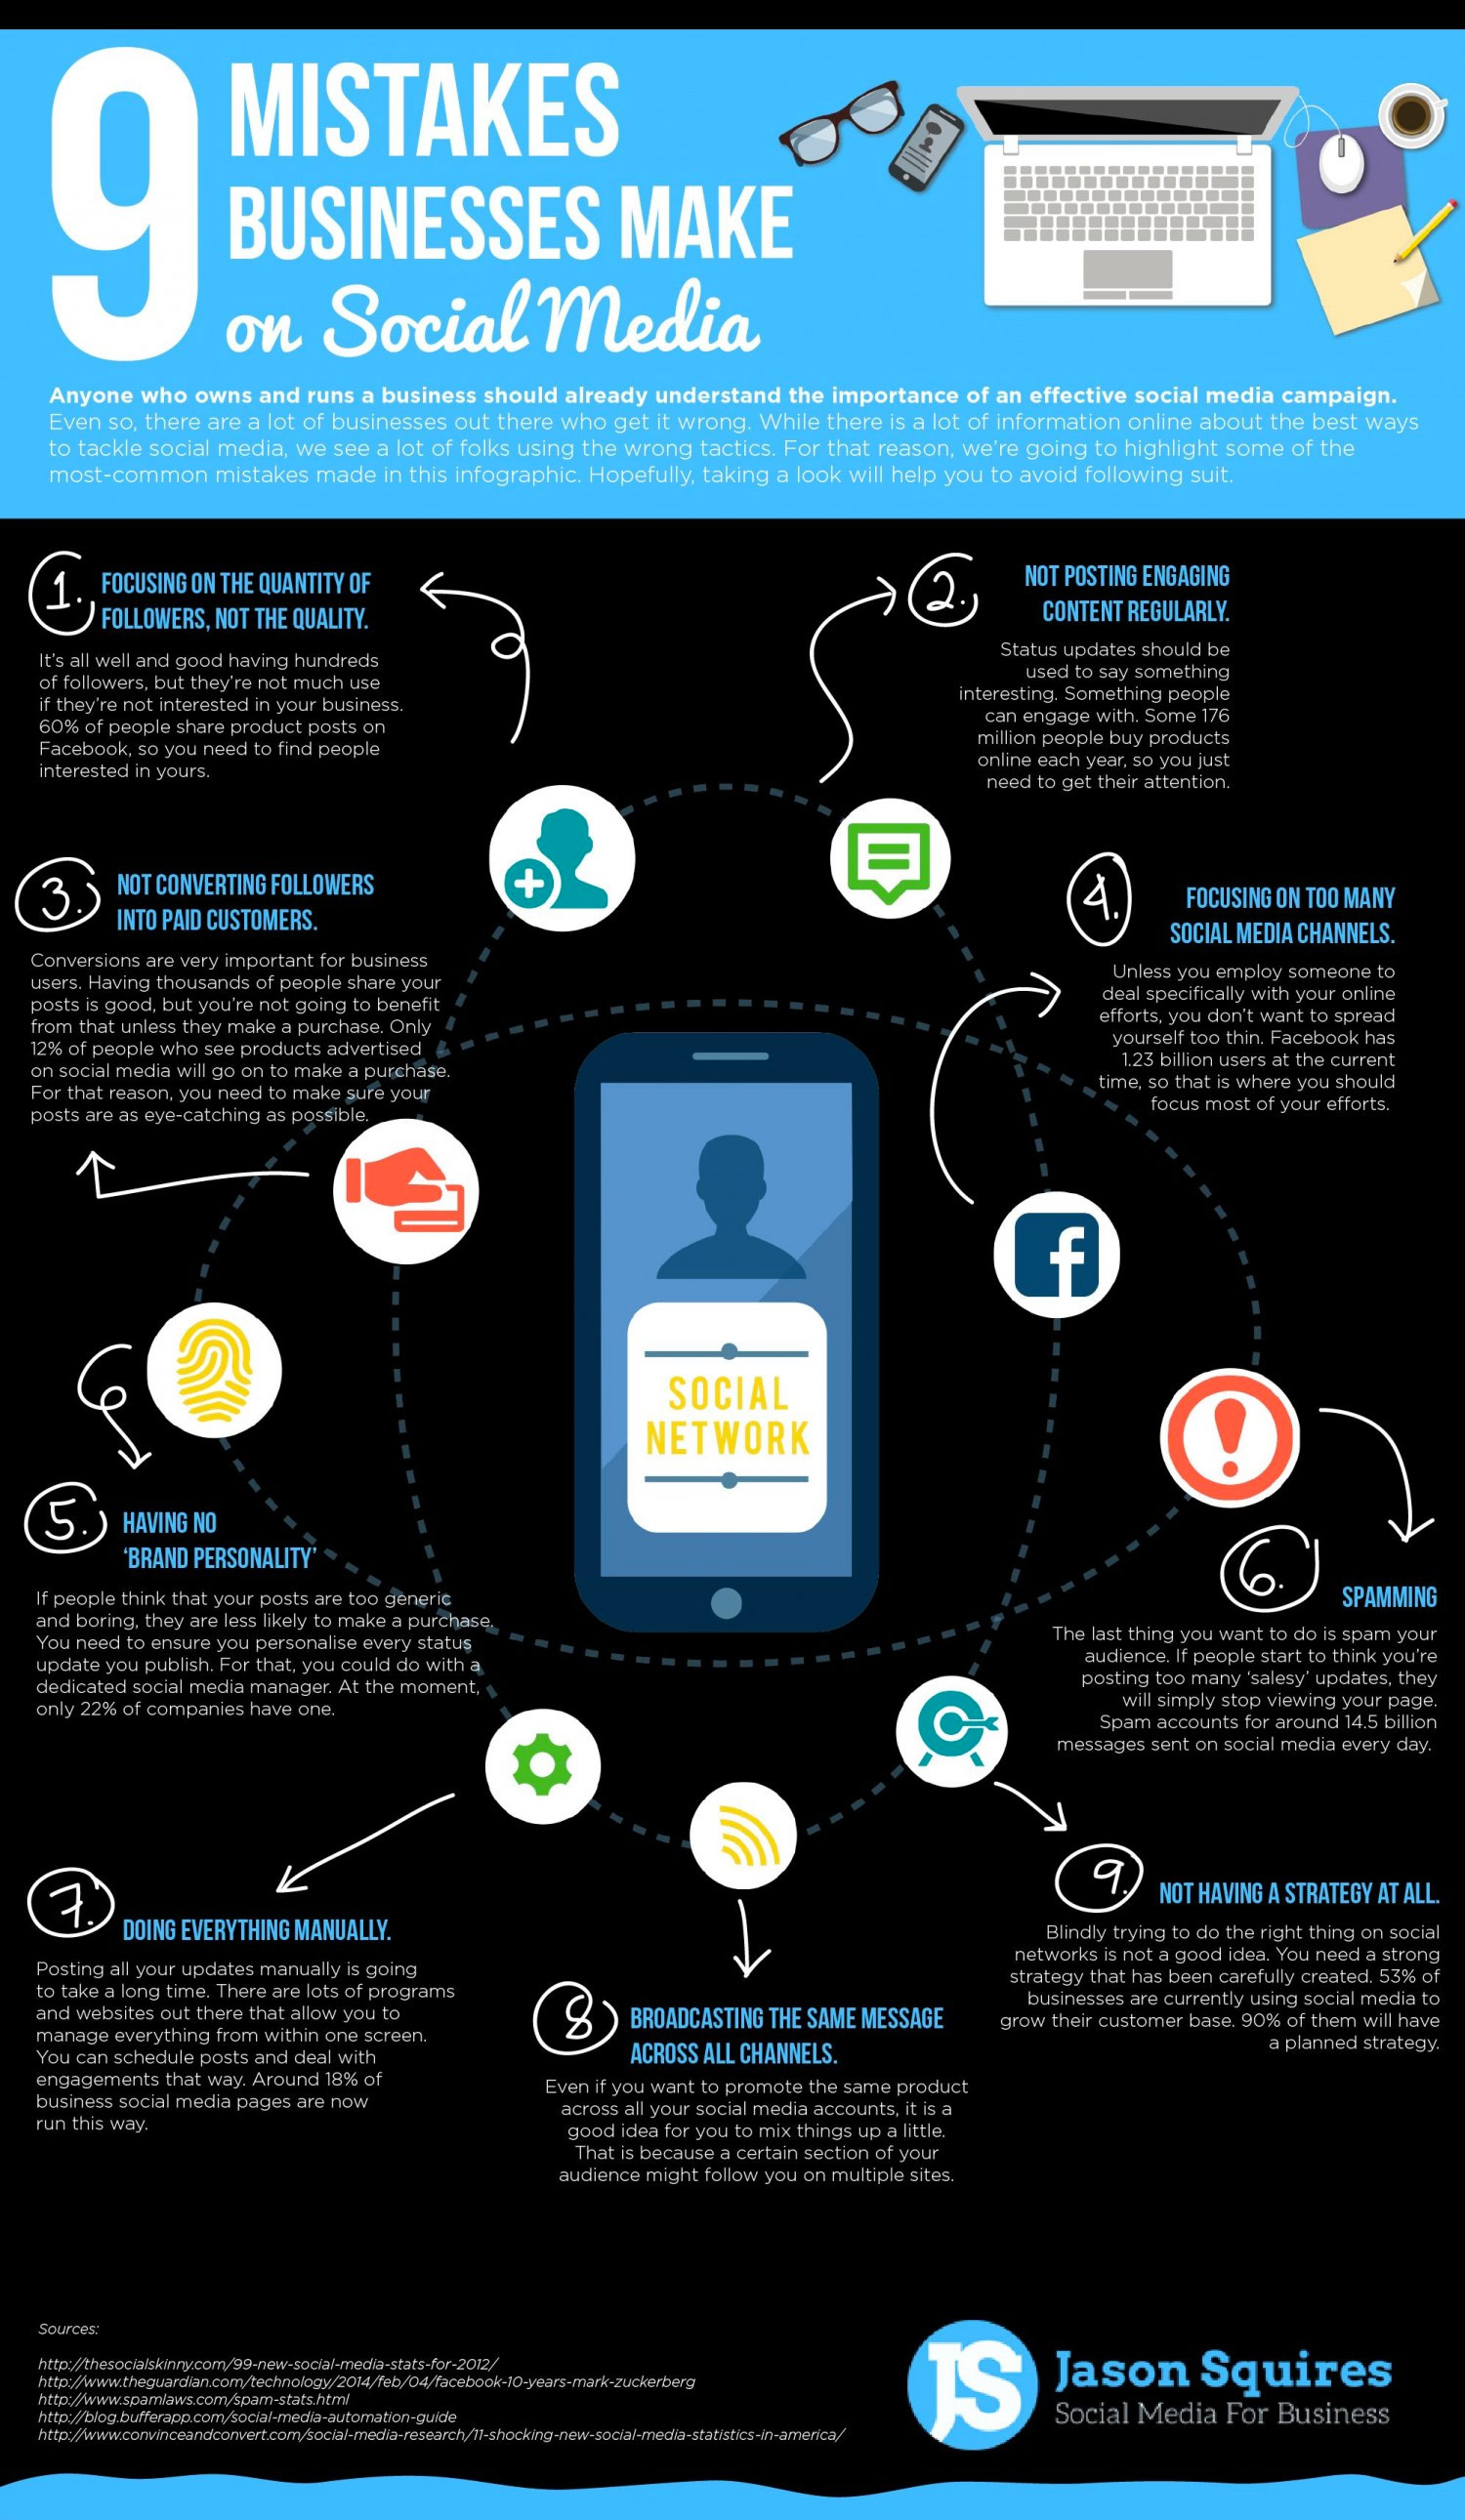 1415043050-9-mistakes-businesses-make-social-media-infographic